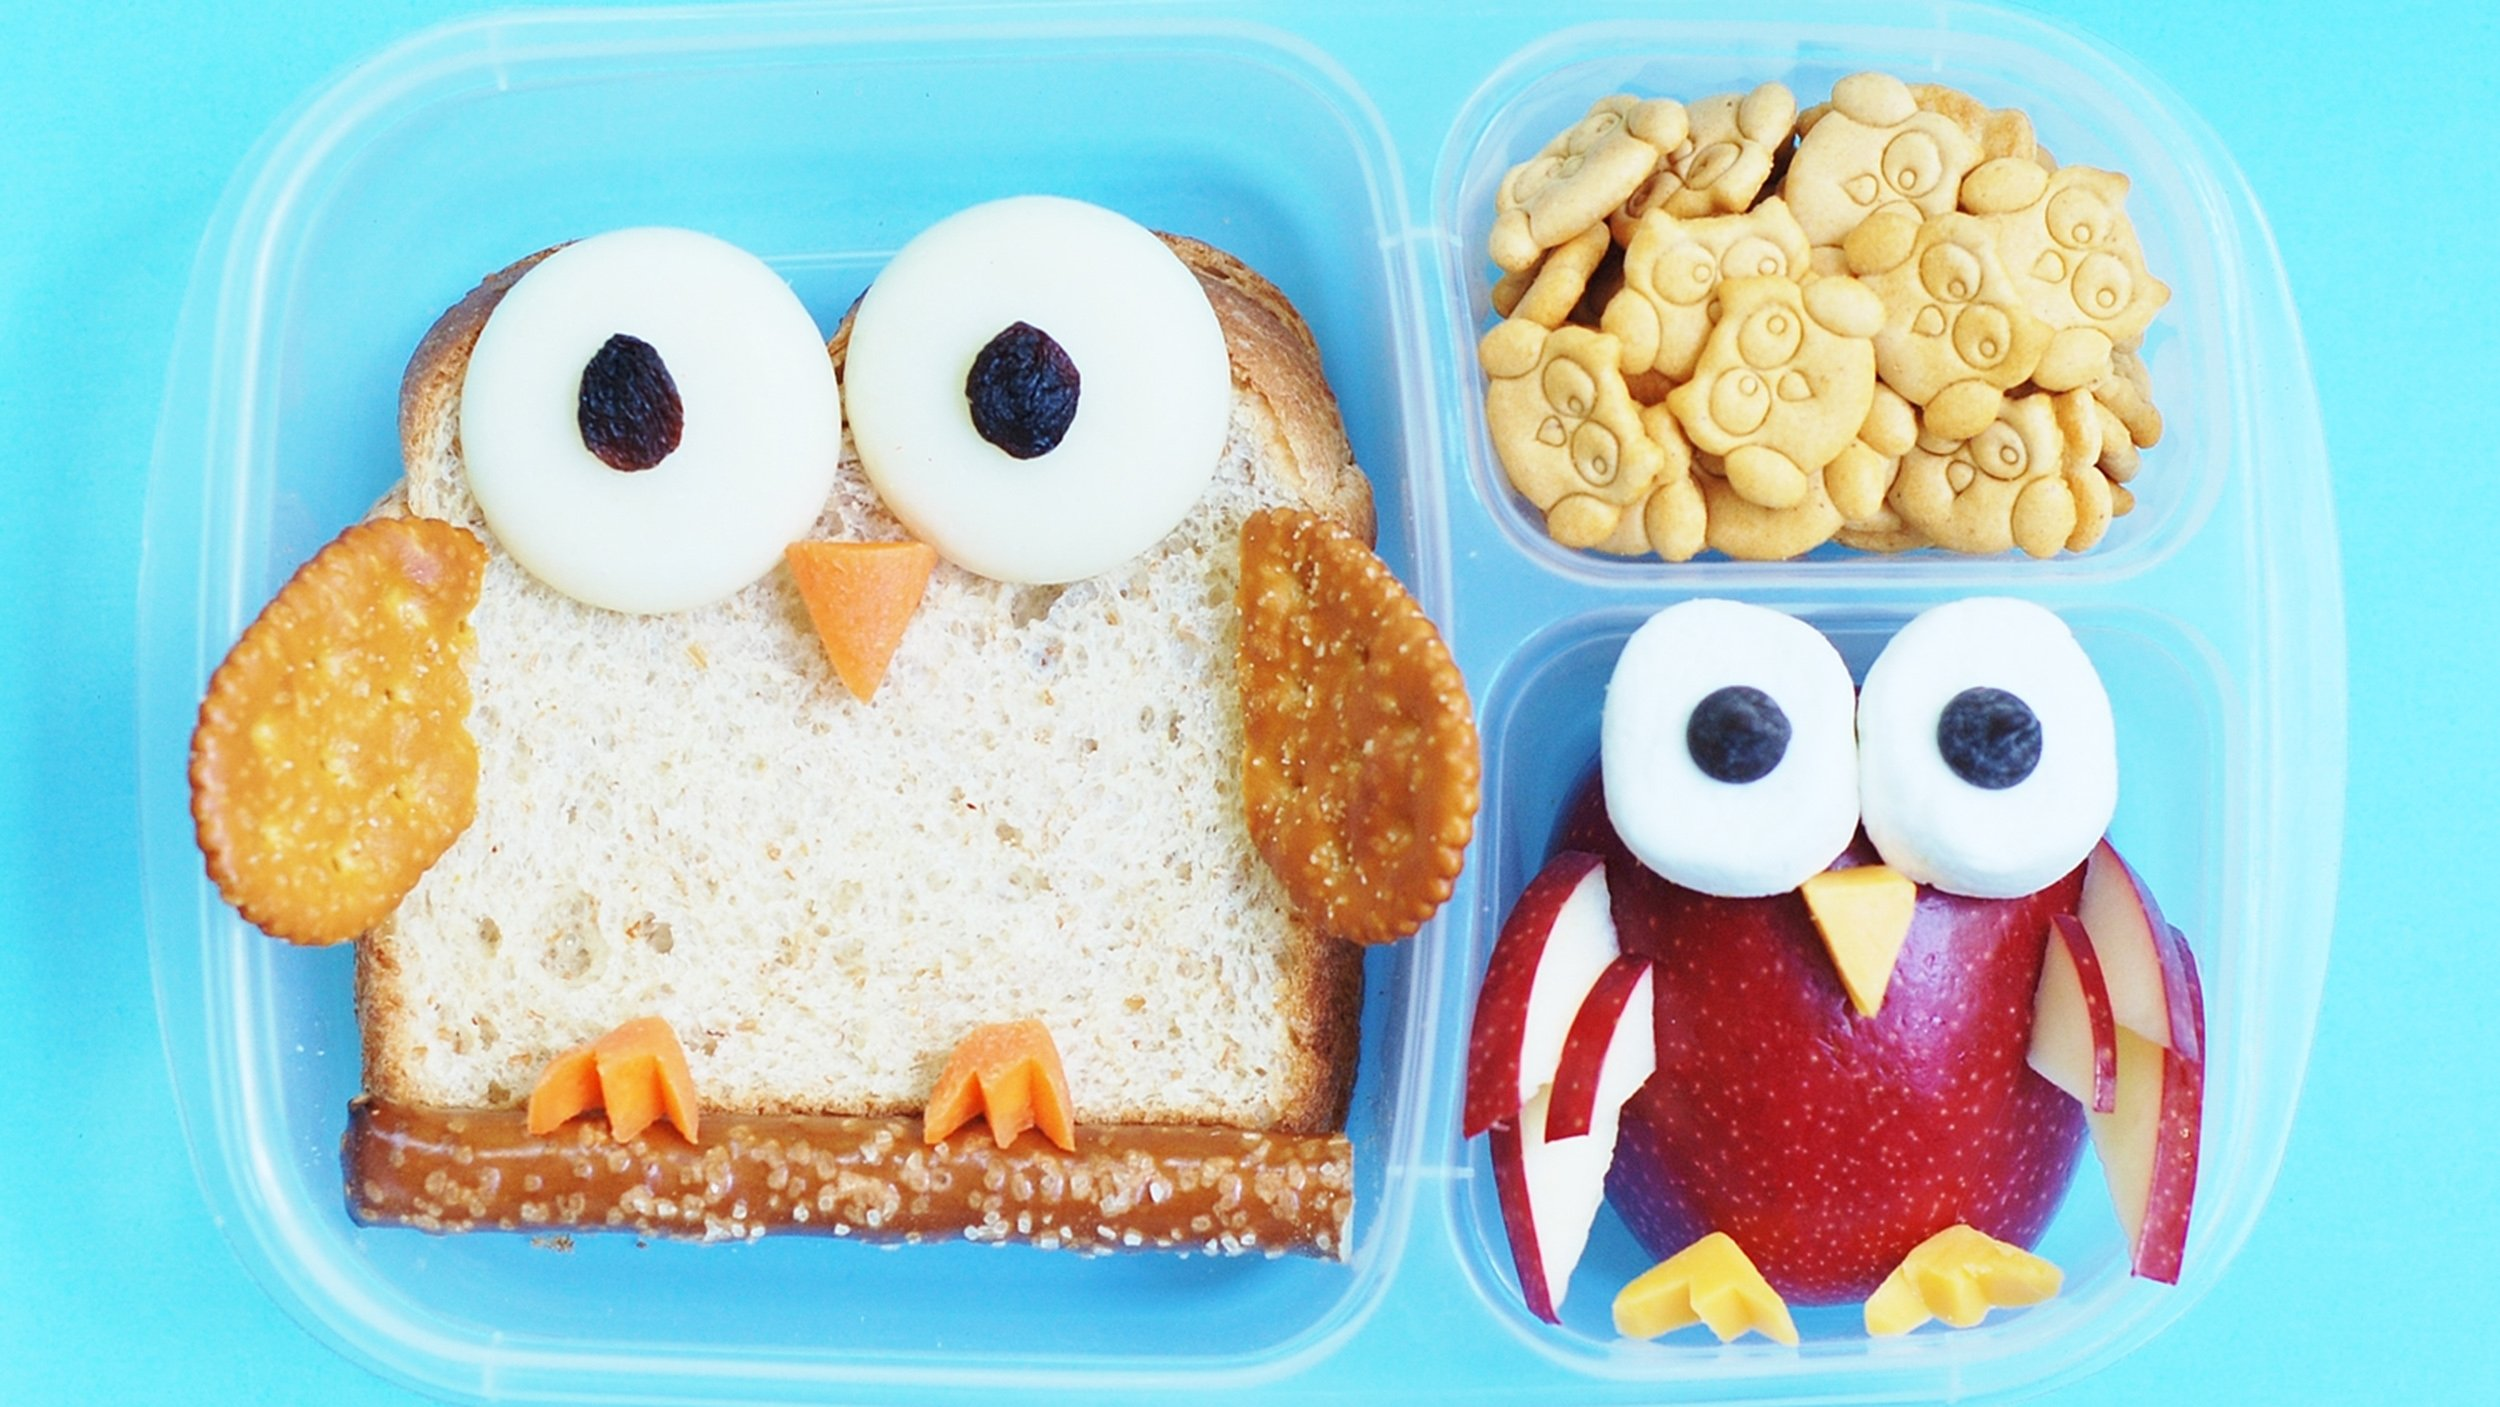 10 Fashionable Bento Box Ideas For Kids 5 cute and creative bento box lunch ideas for kids today 6 2020